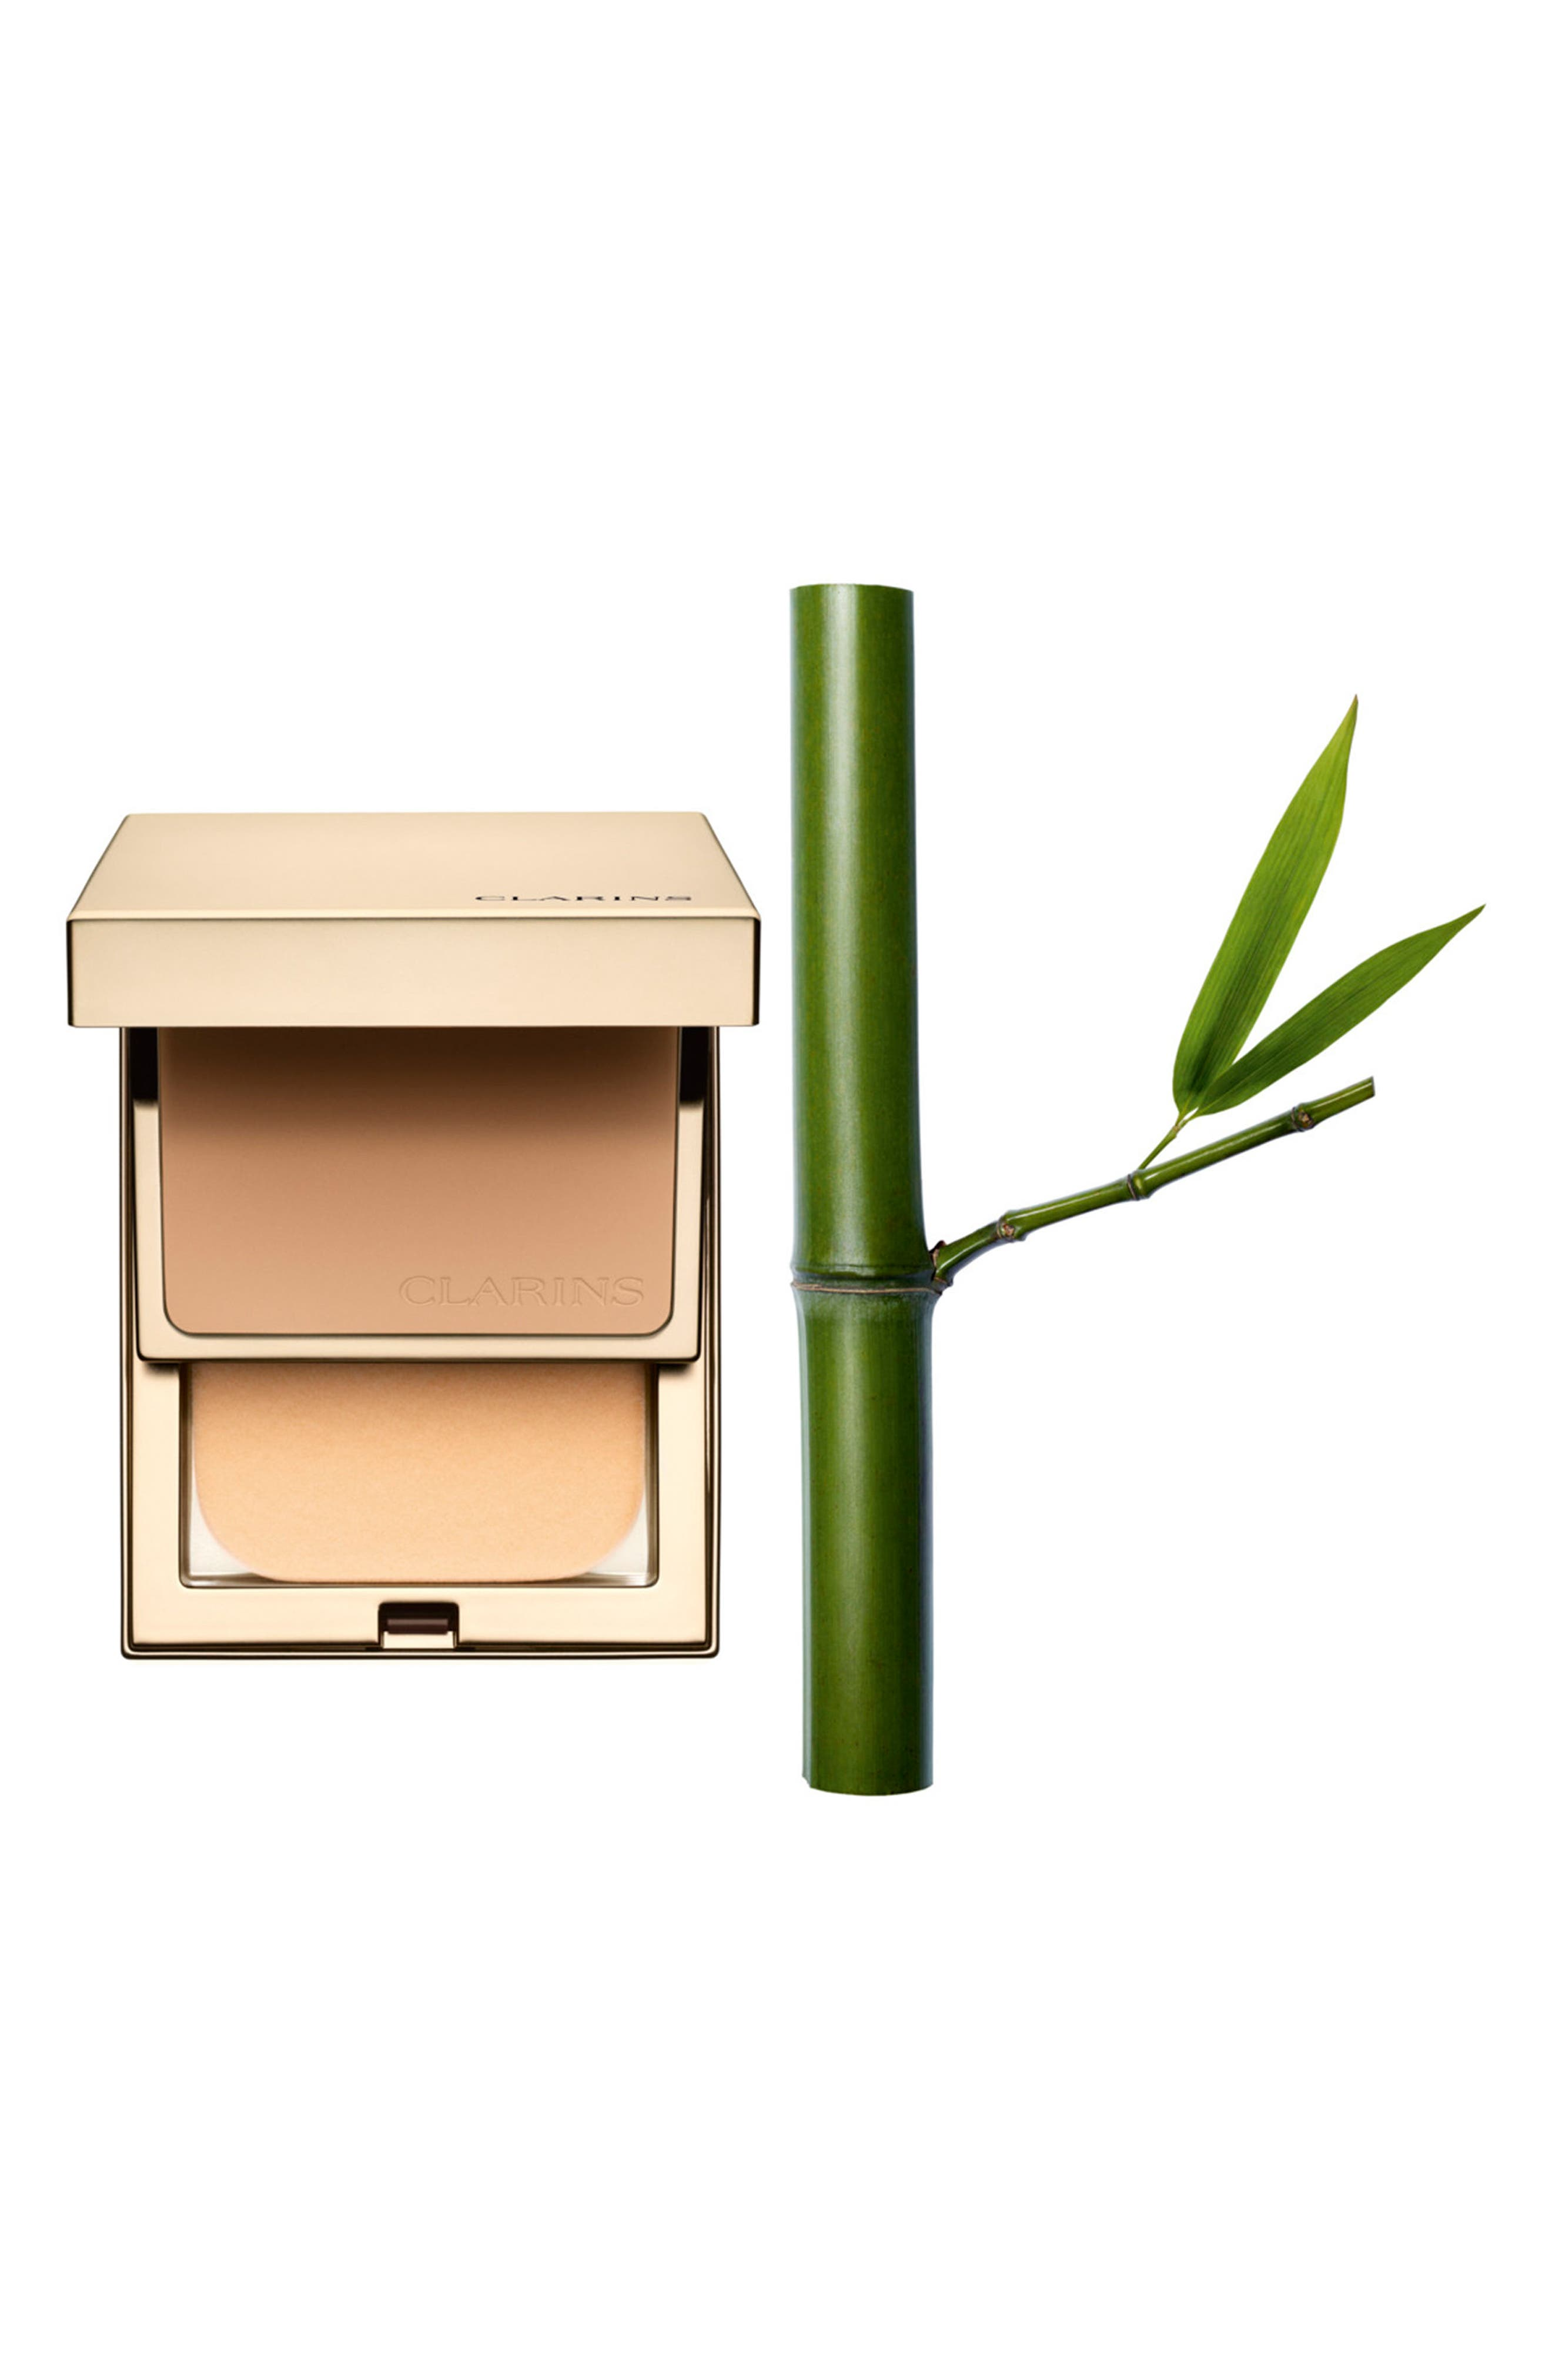 Everlasting Compact Foundation SPF 9,                             Alternate thumbnail 4, color,                             250